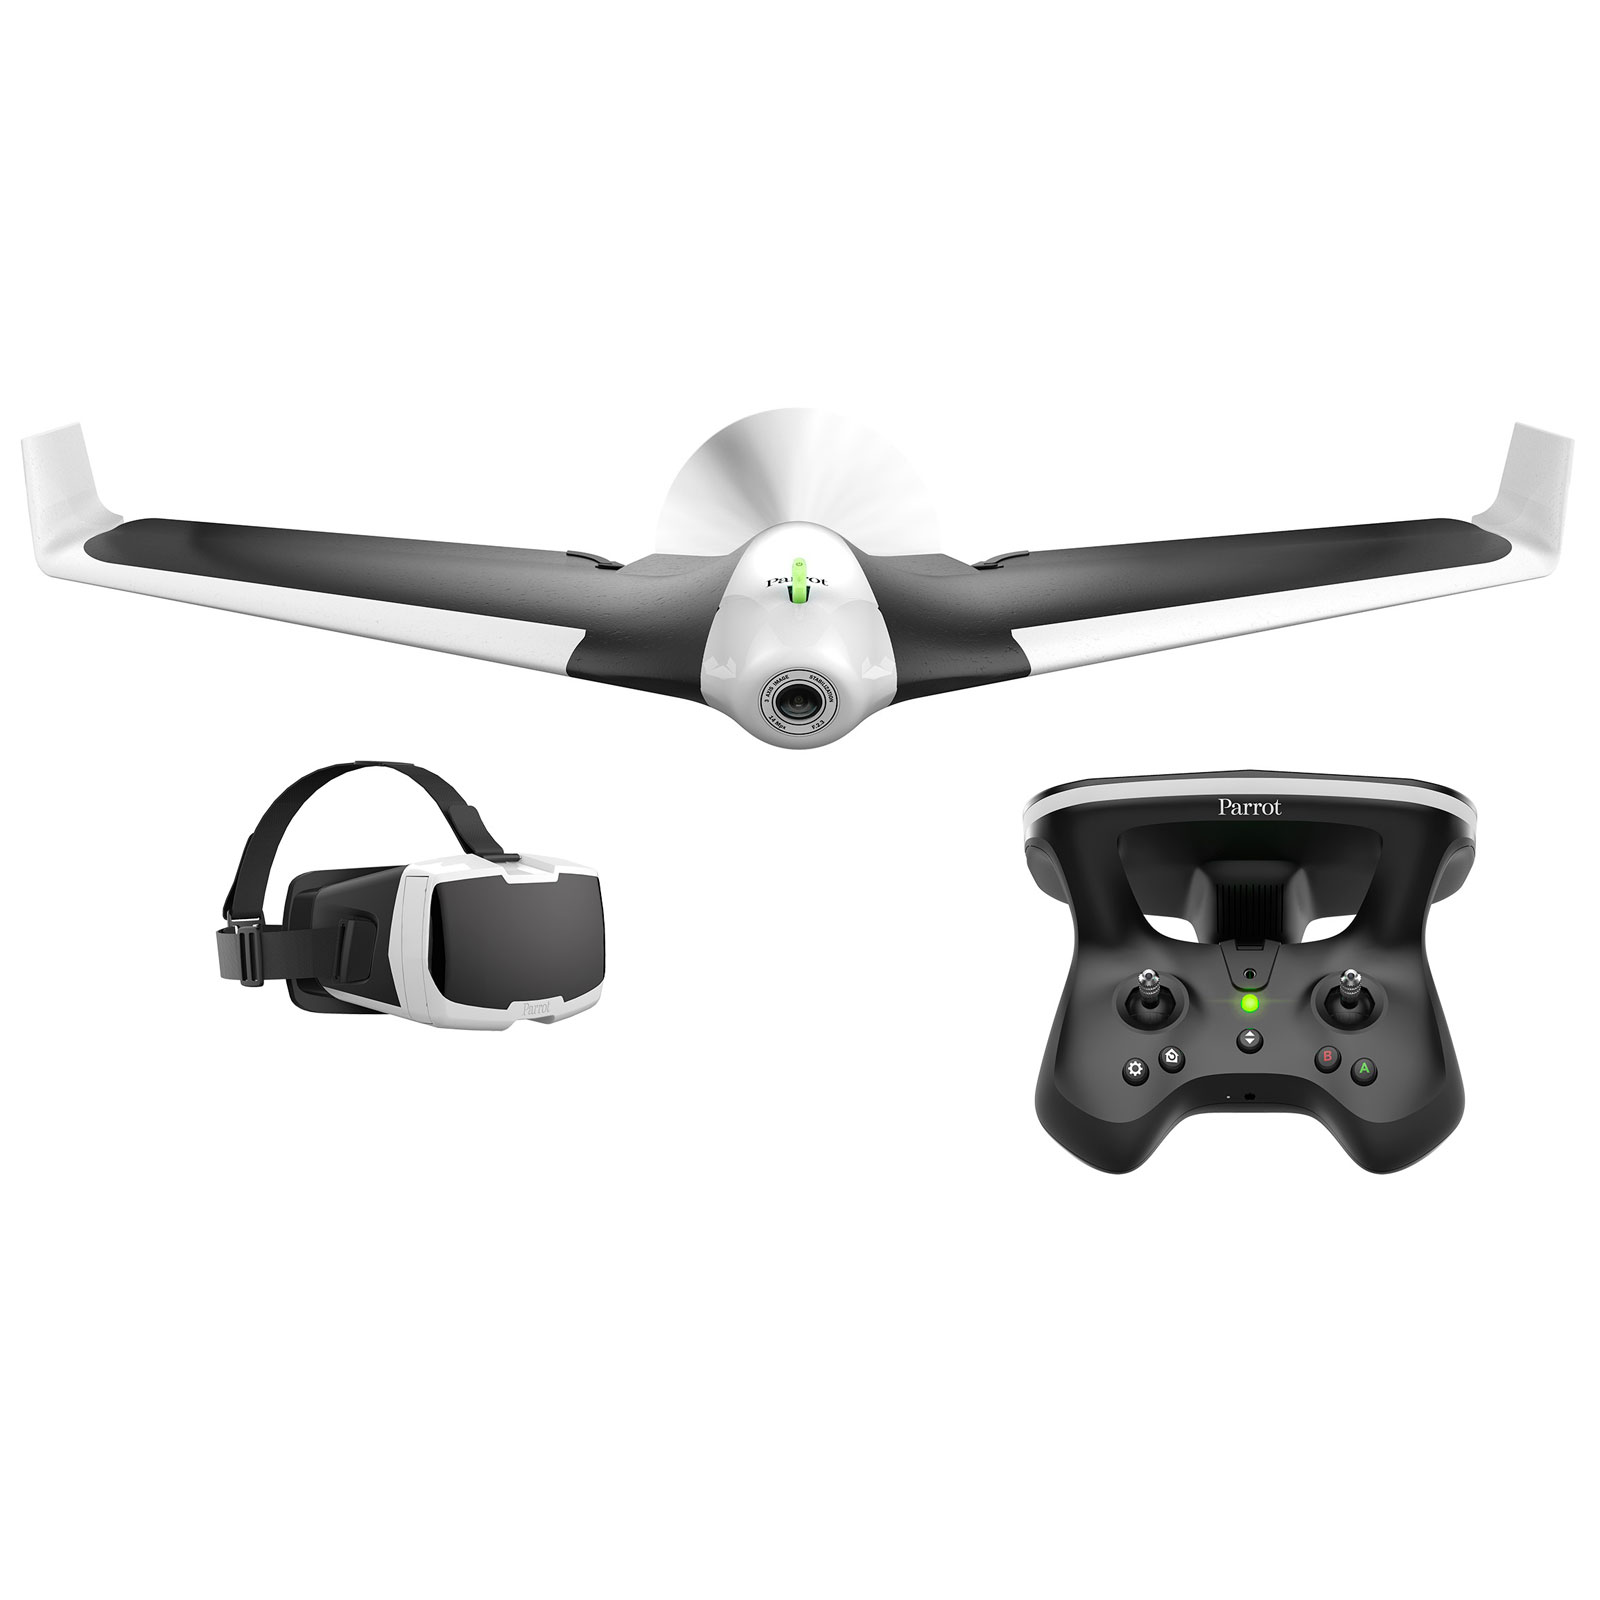 parrot disco fpv drone parrot sur ldlc. Black Bedroom Furniture Sets. Home Design Ideas